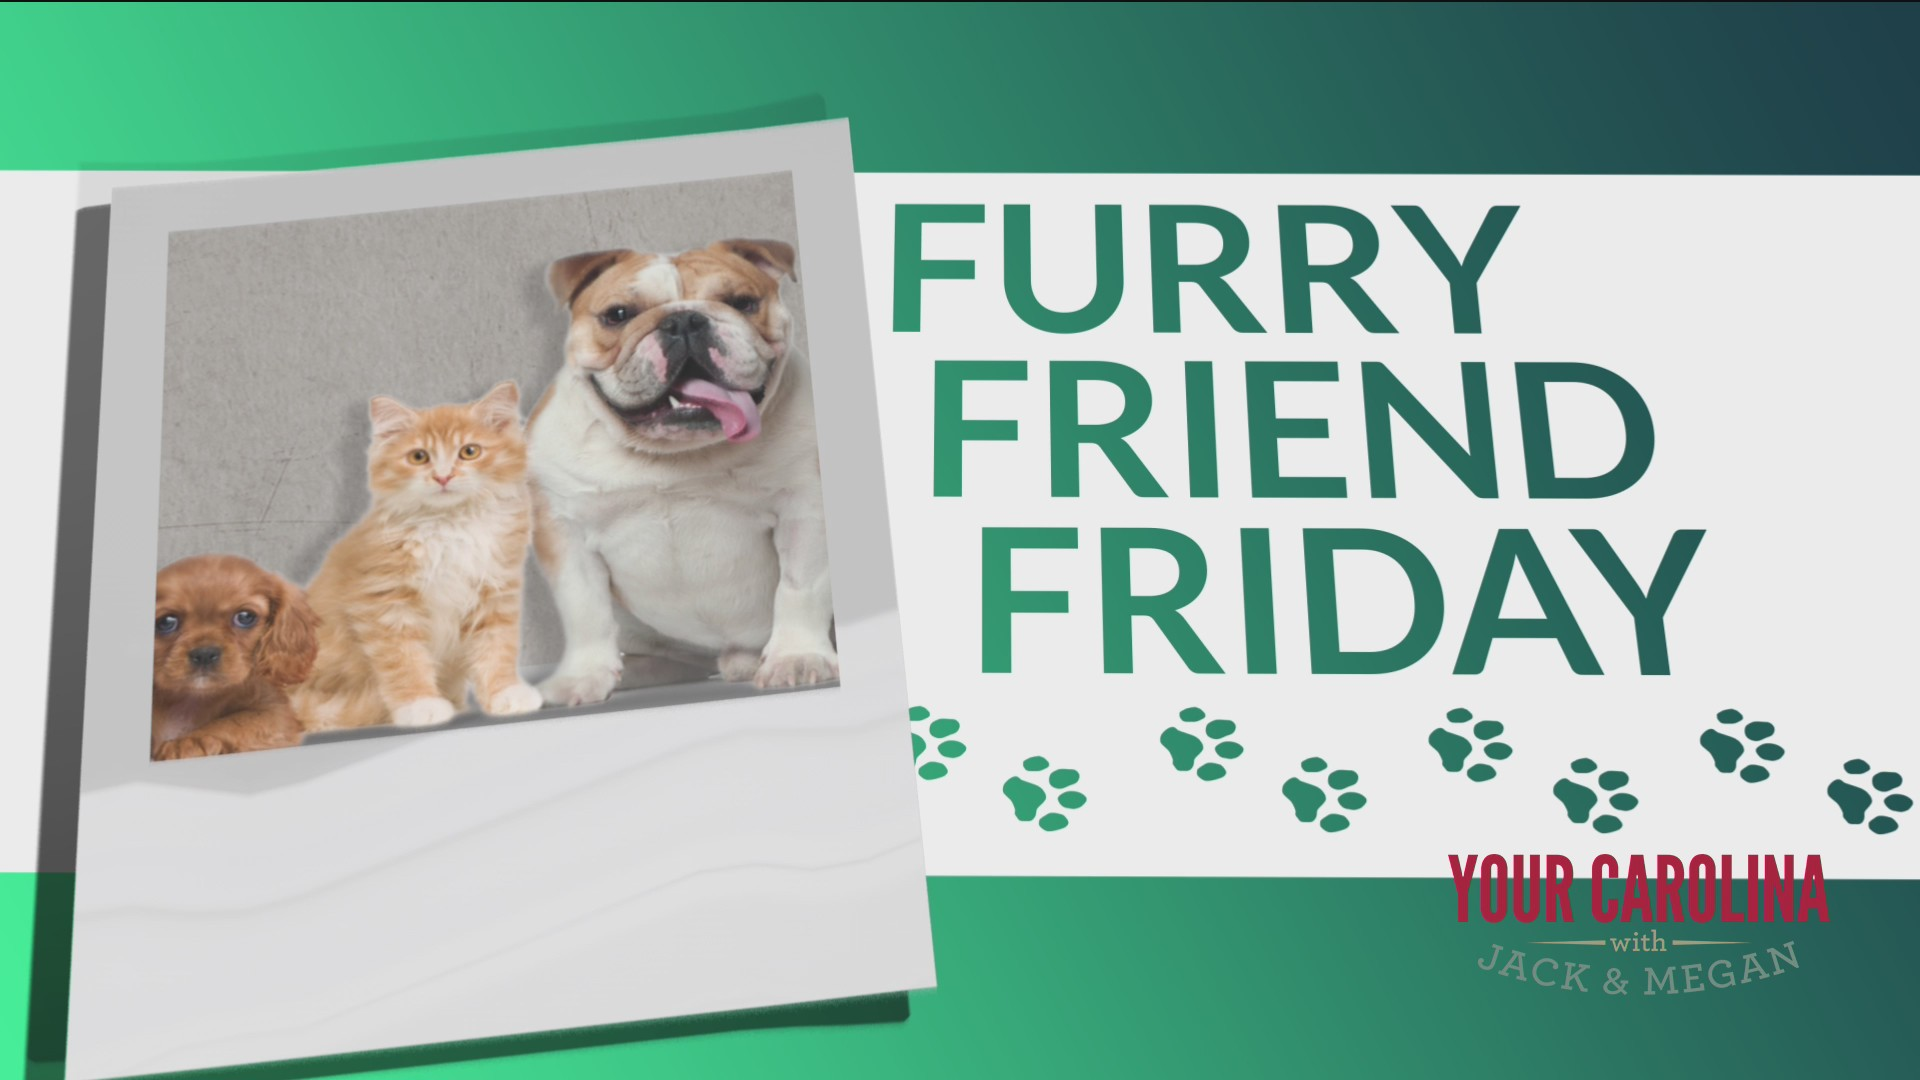 Furry Friend Friday - How Are Our Friends In Spartanburg and Greenwood?